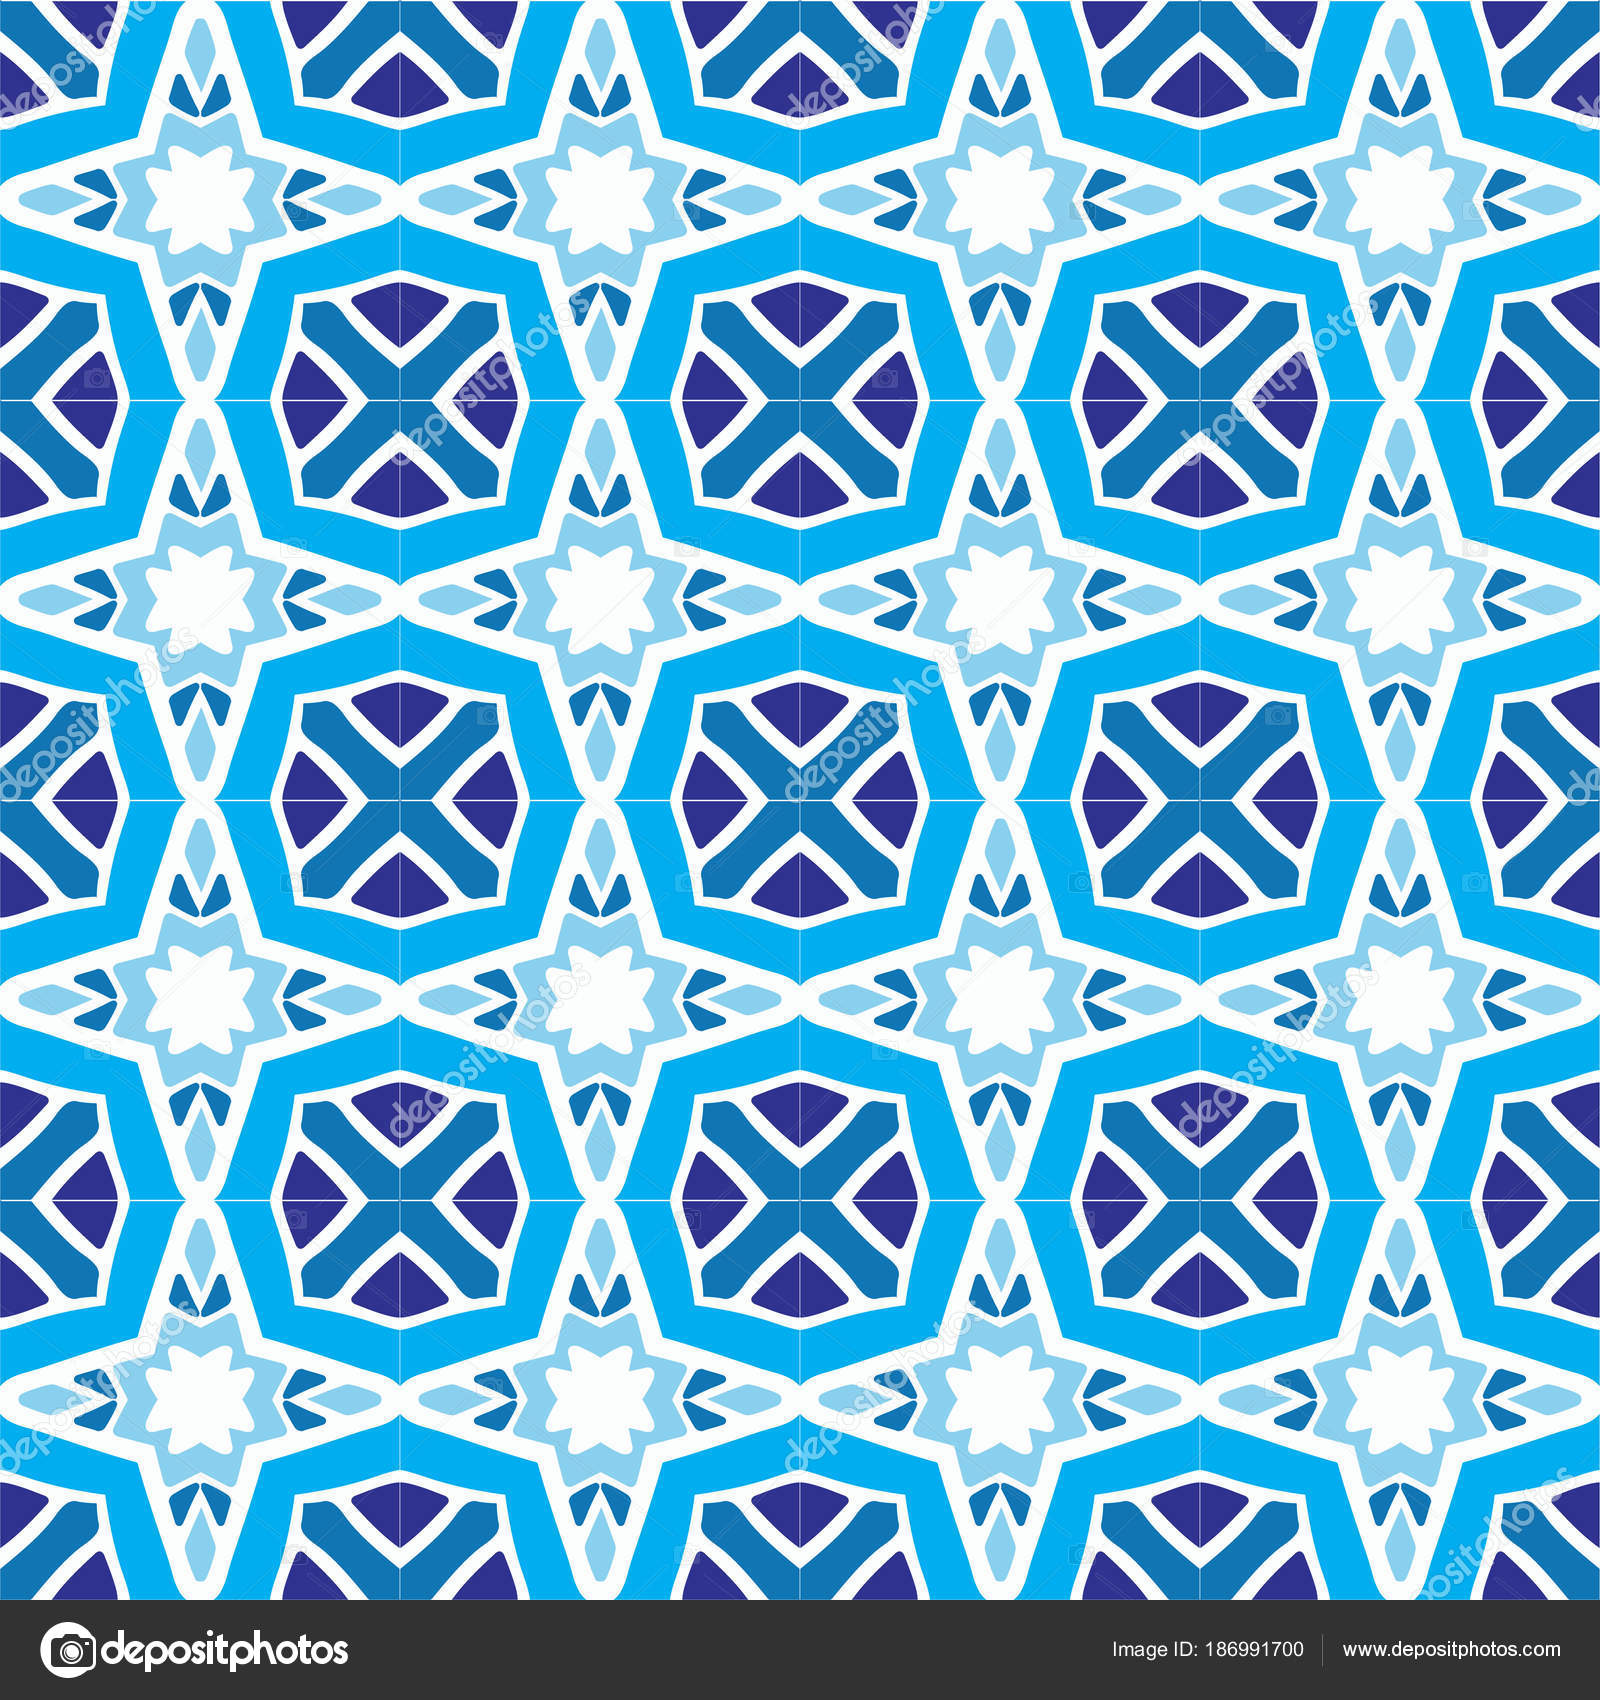 Abstract Blue Square Tile Geometric Pattern Stock Vector